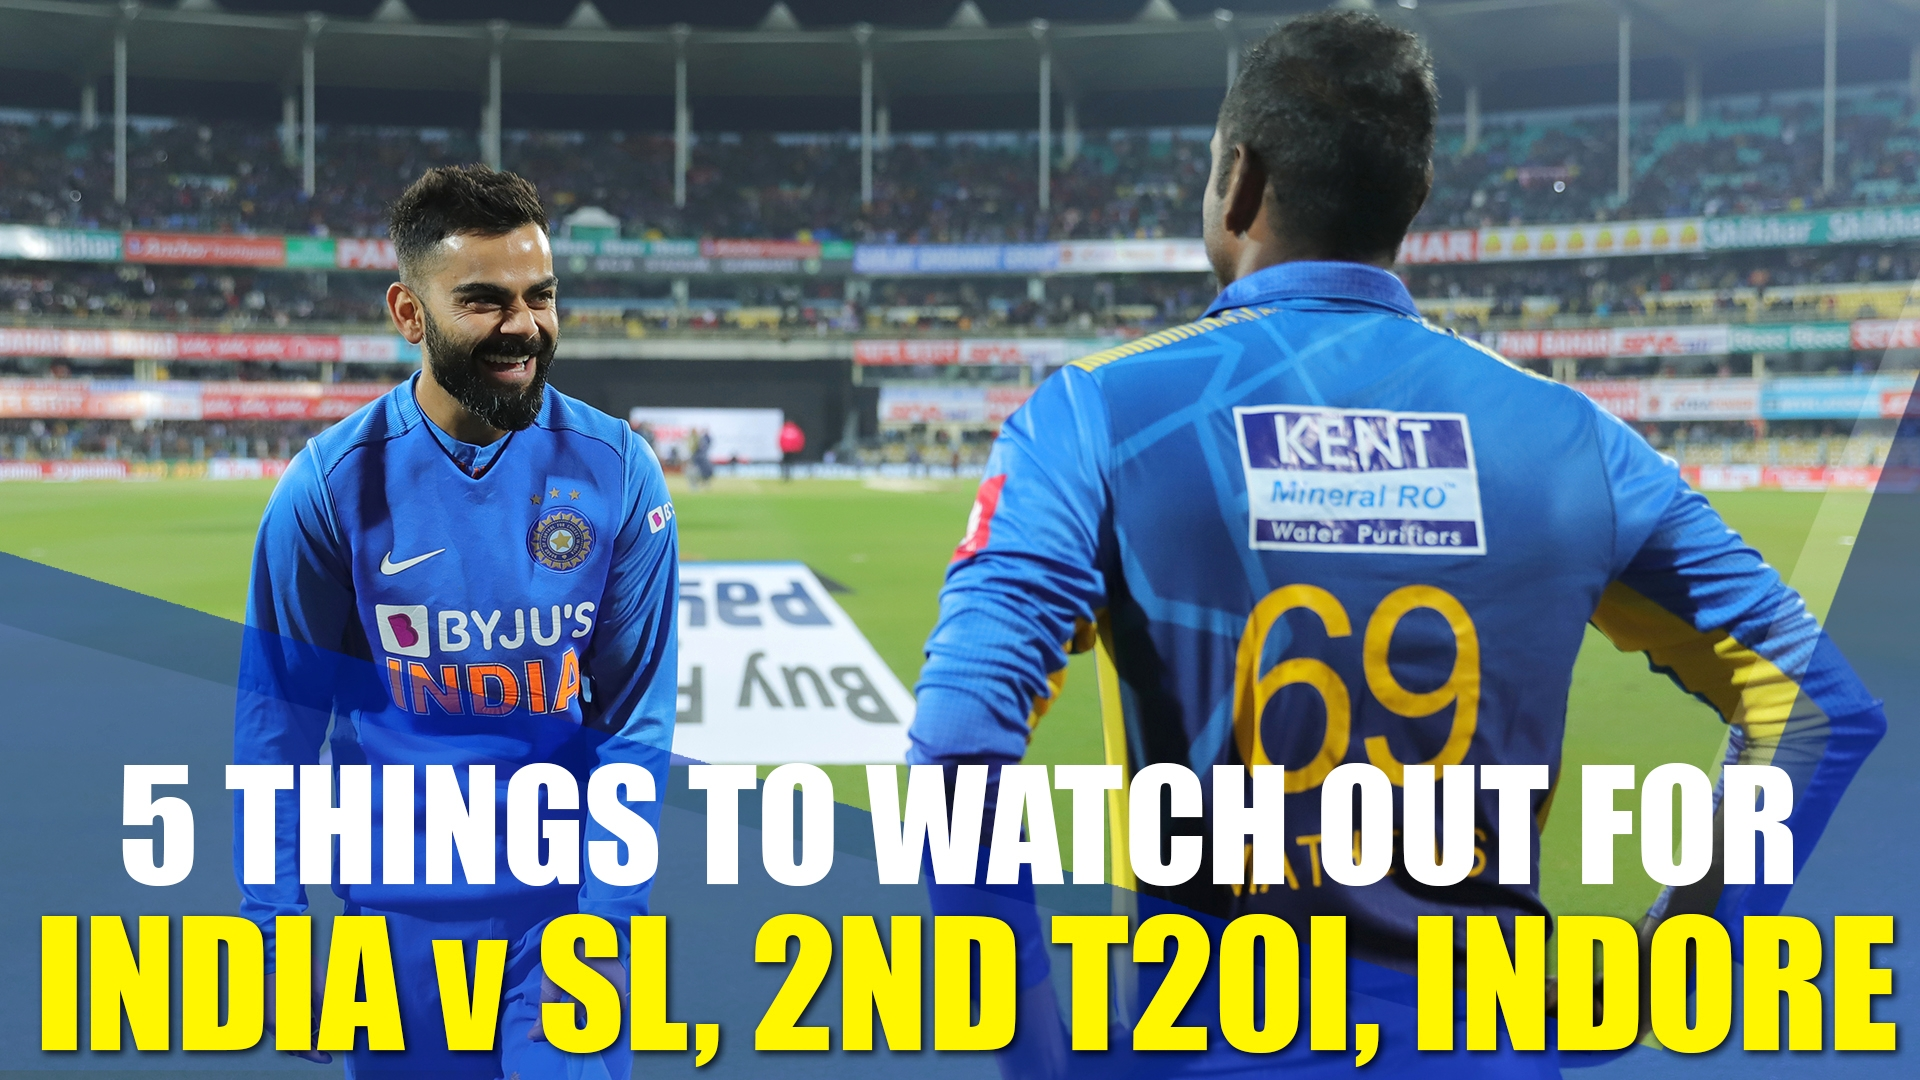 ind vs sl world cup 2020